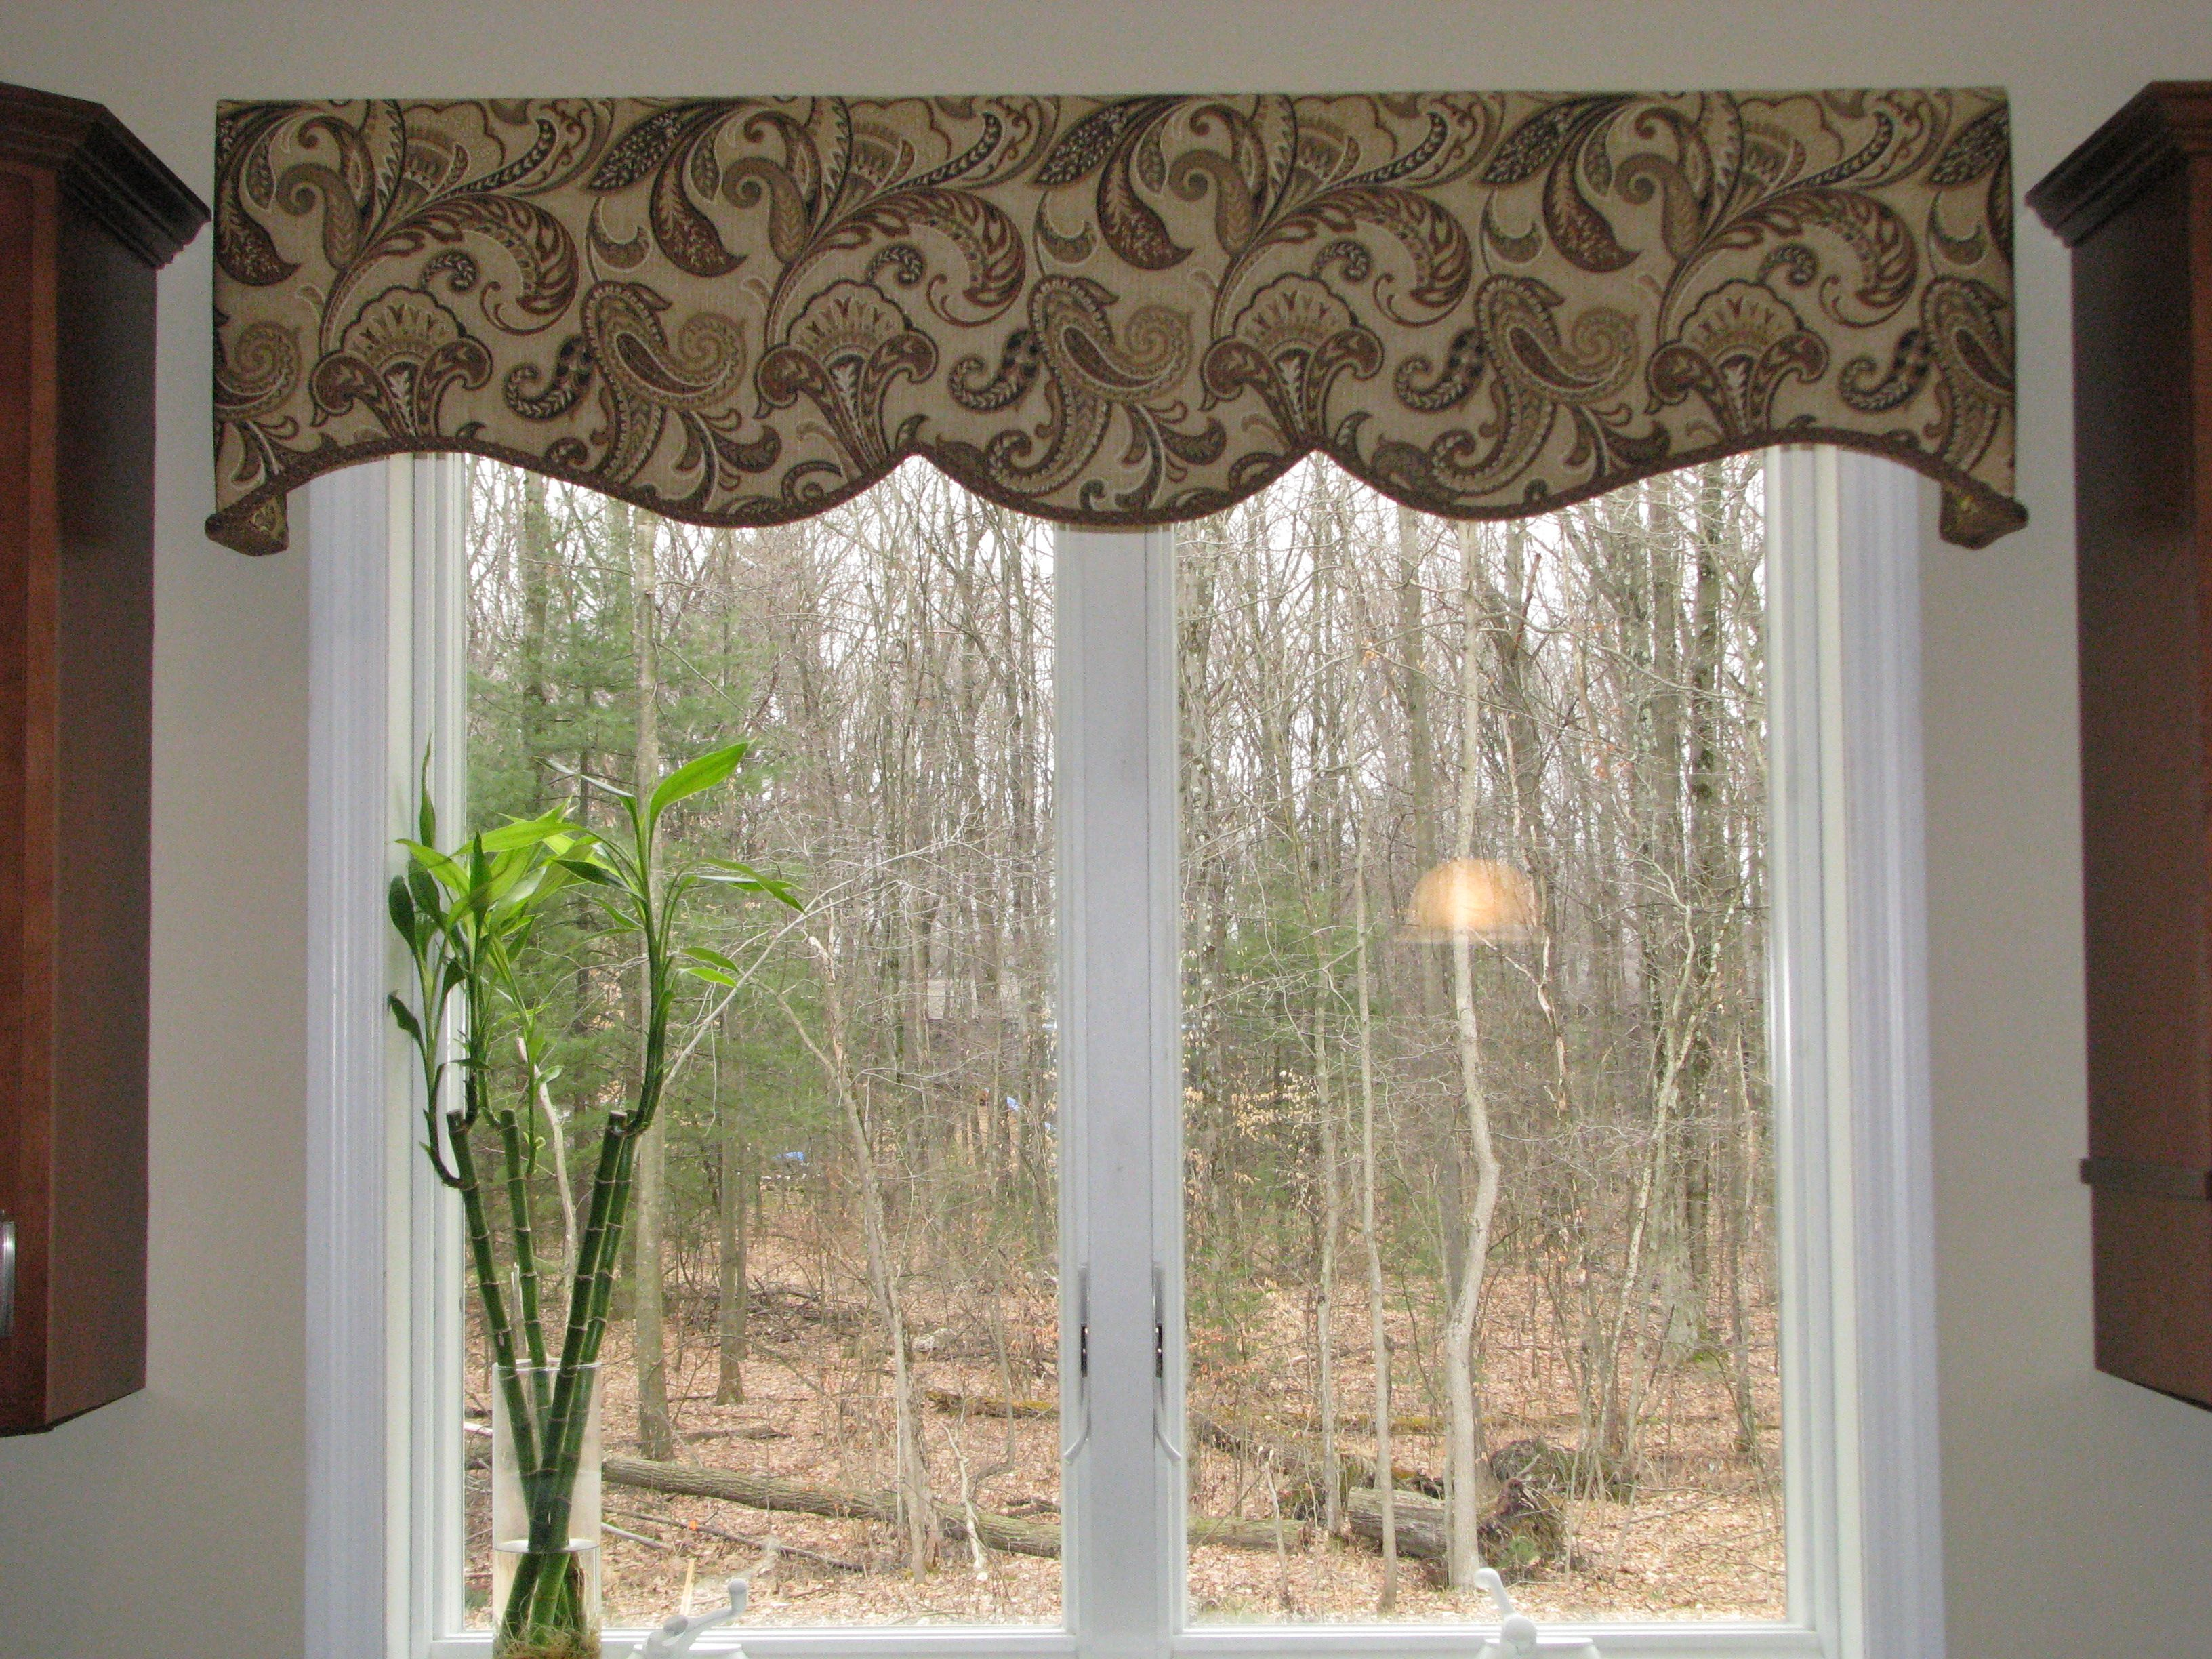 Shaped Cornice Design Over Sink Window Fabric Pattern Complements